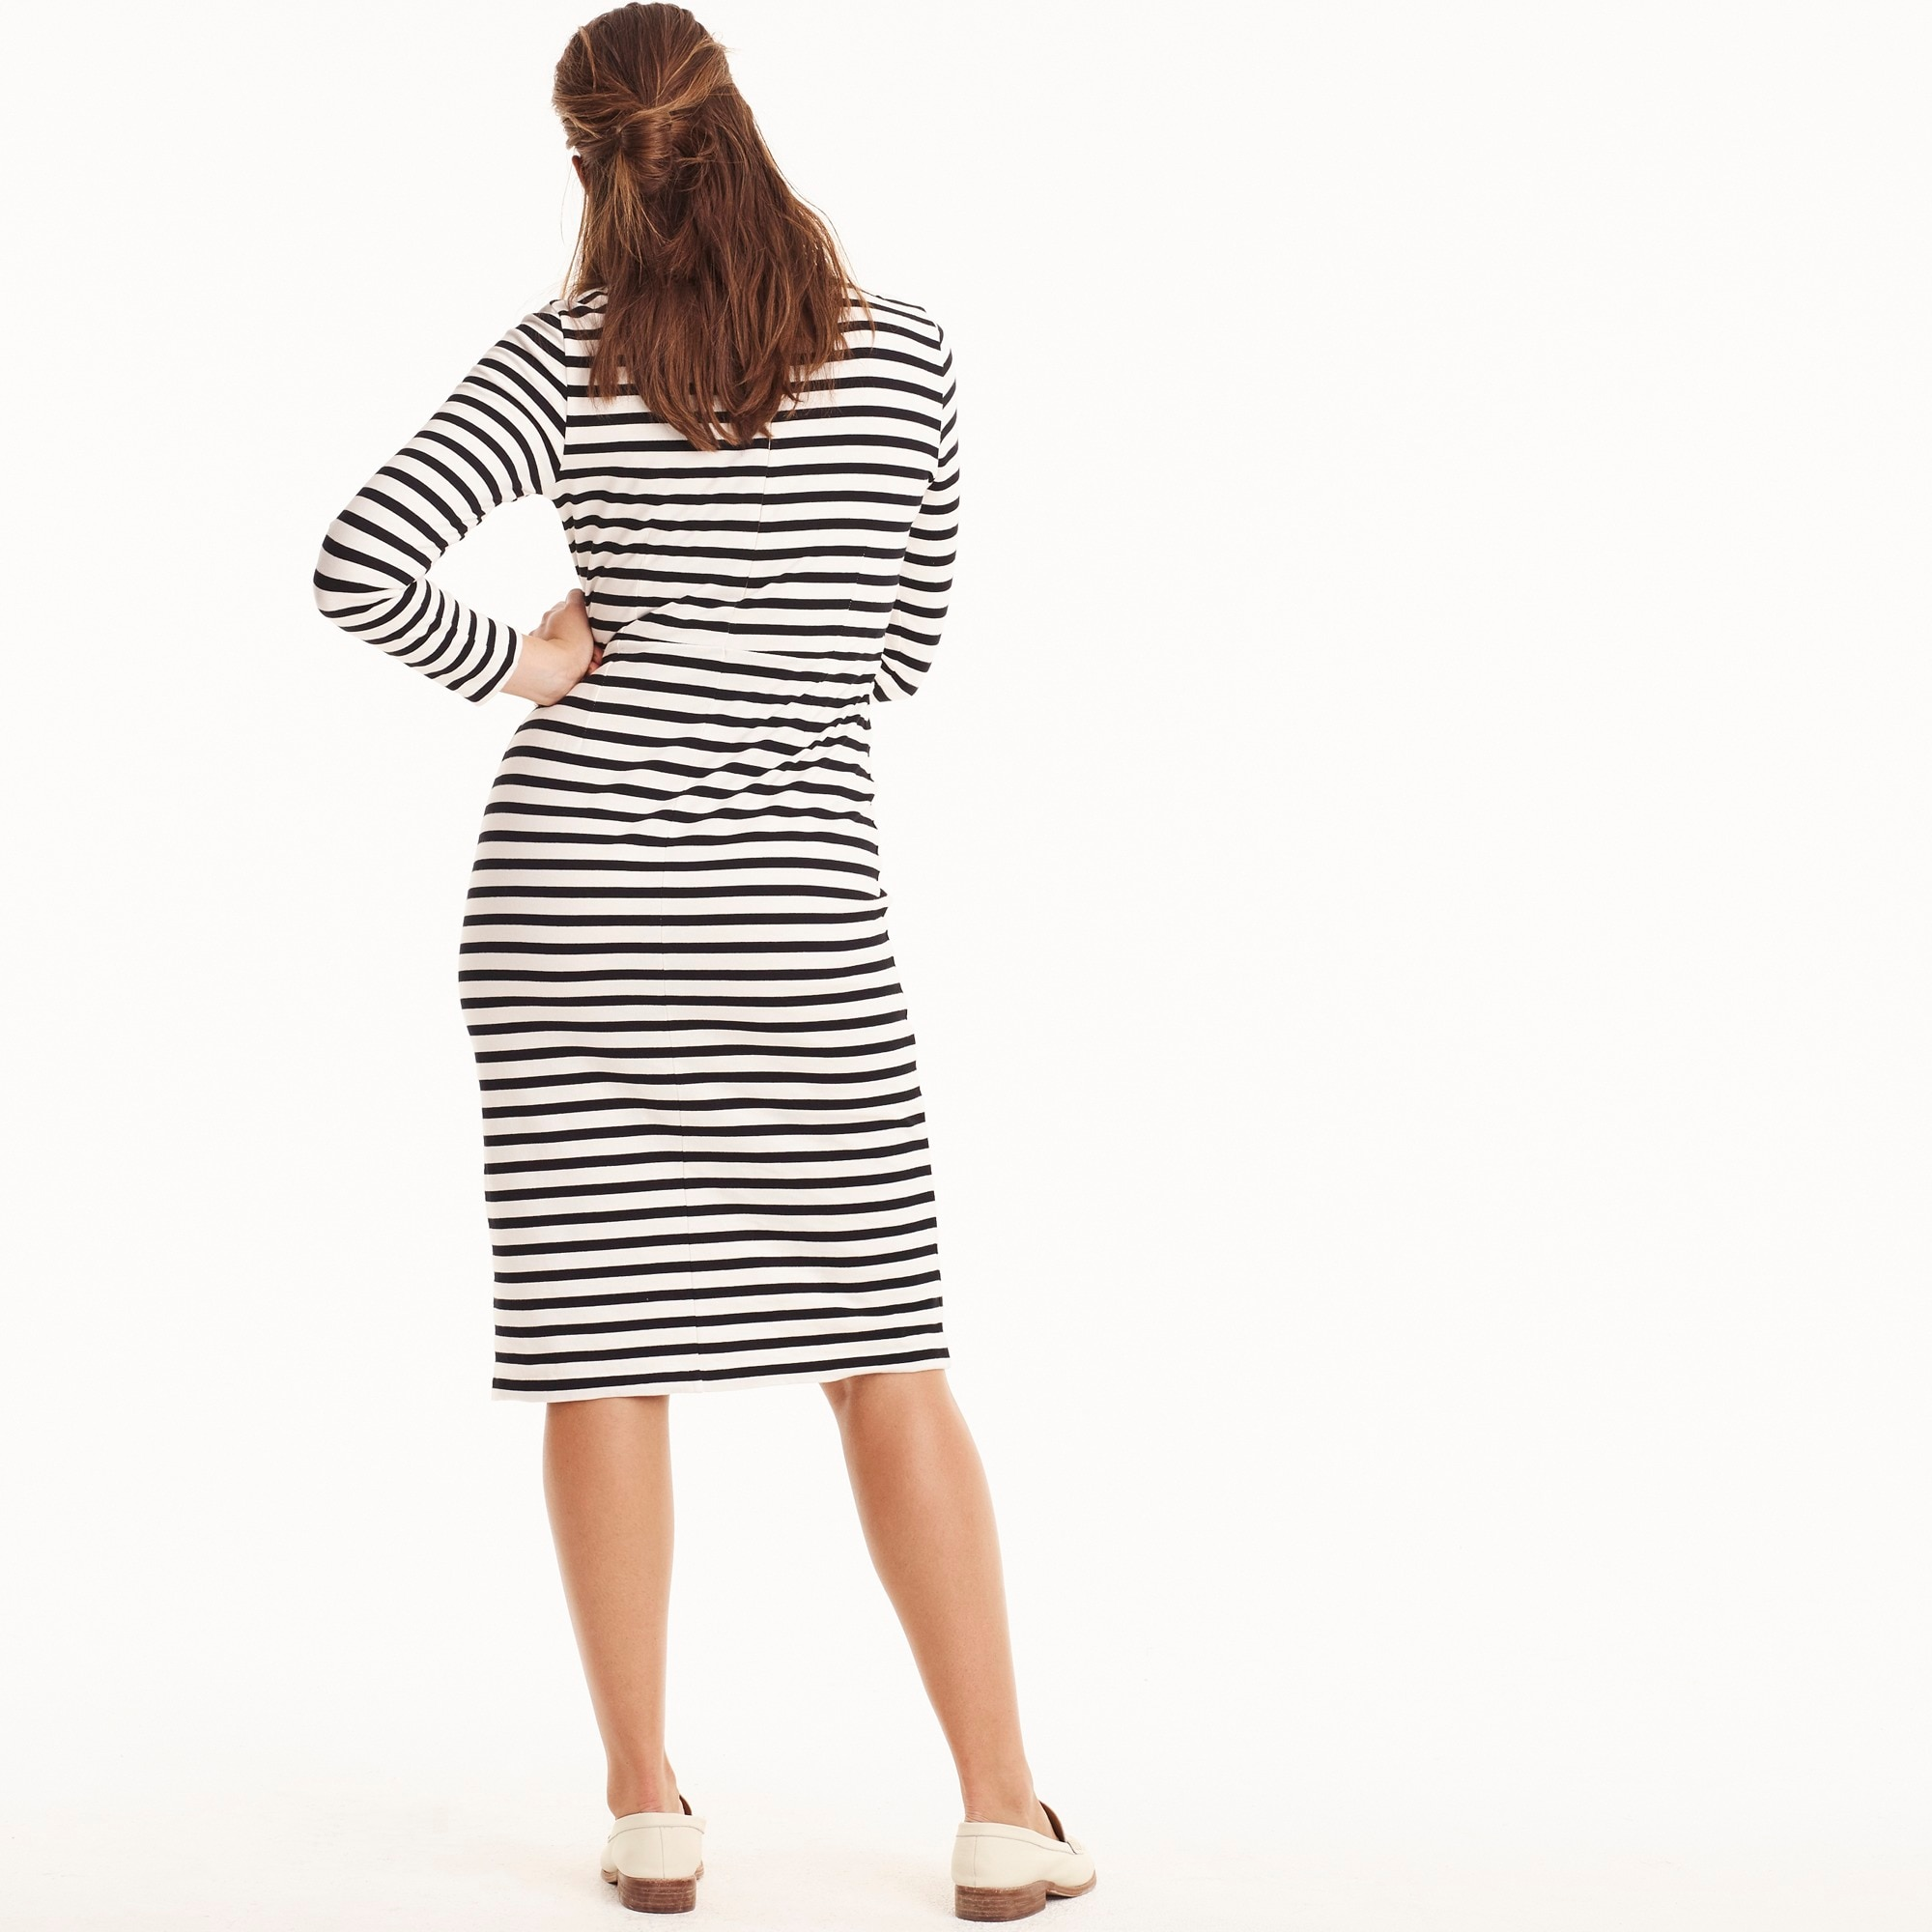 Image 4 for Long-sleeve striped dress